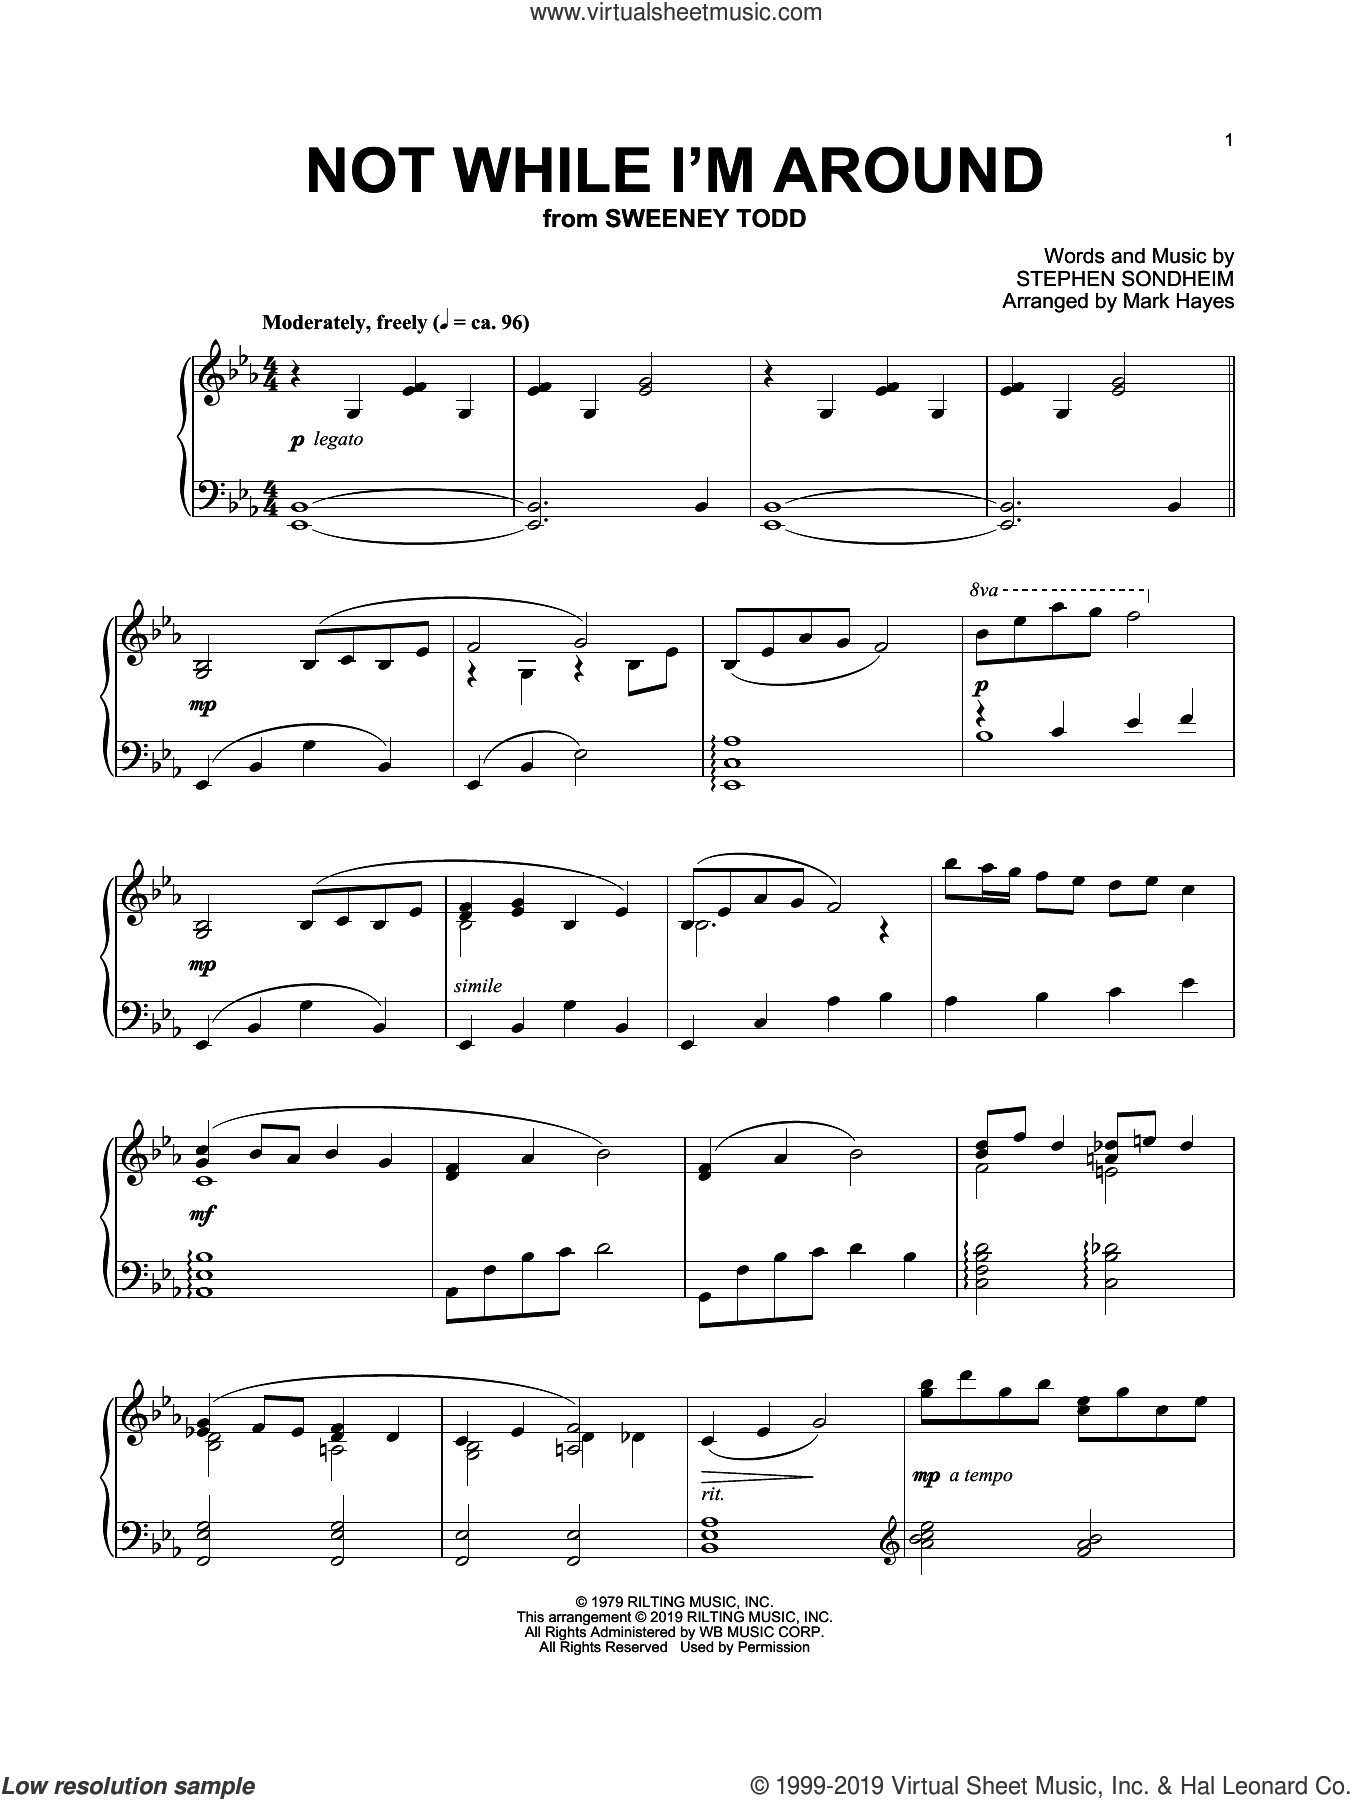 Not While I'm Around (arr. Mark Hayes) sheet music for piano solo by Stephen Sondheim and Mark Hayes, intermediate skill level